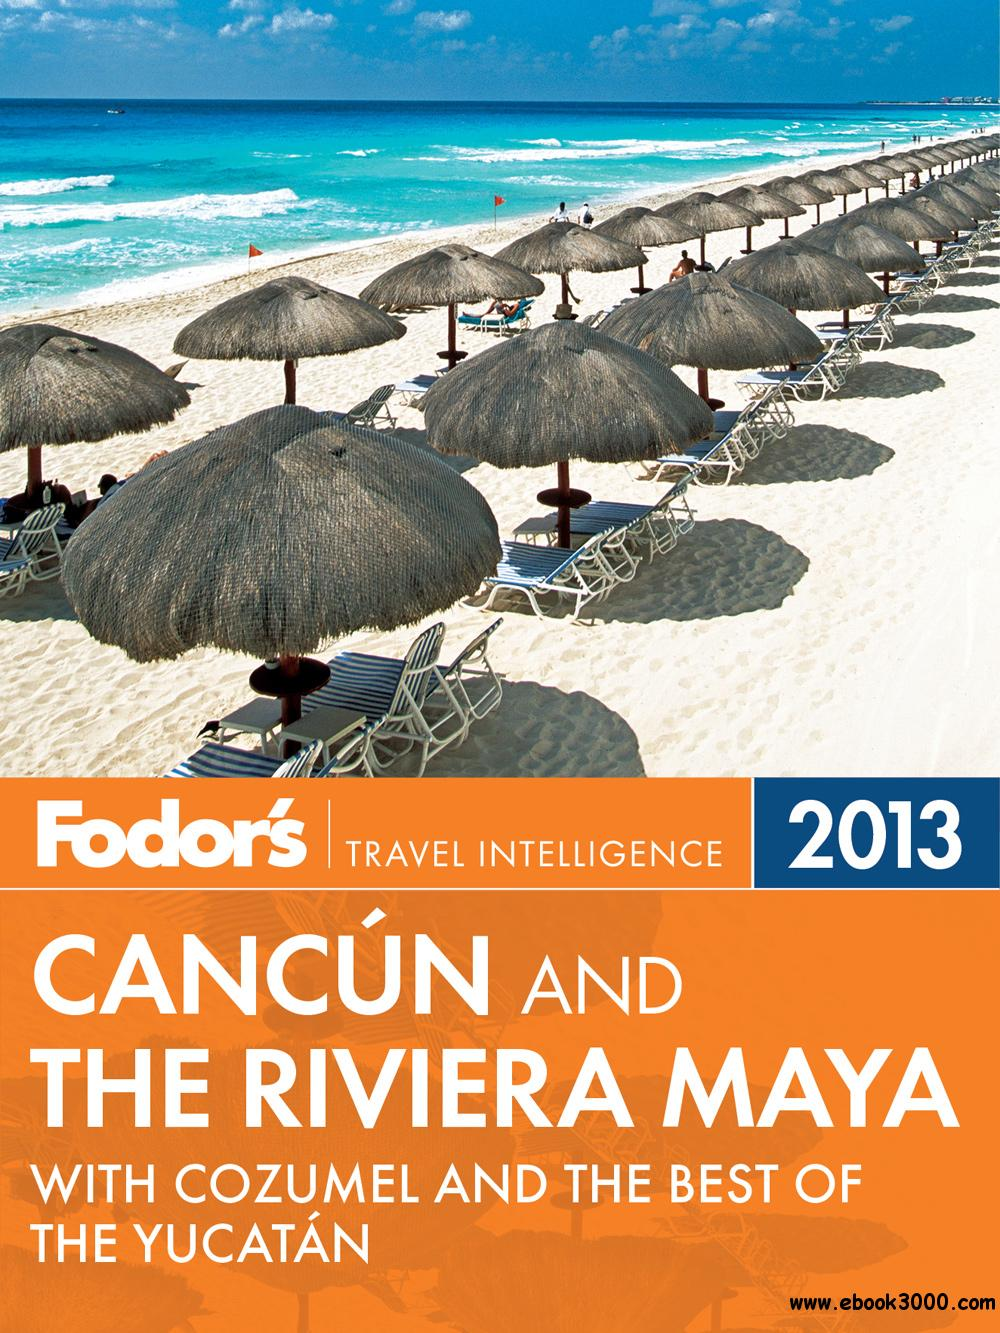 Fodor's Cancun and the Riviera Maya 2013: with Cozumel and the Best of the Yucatan free download